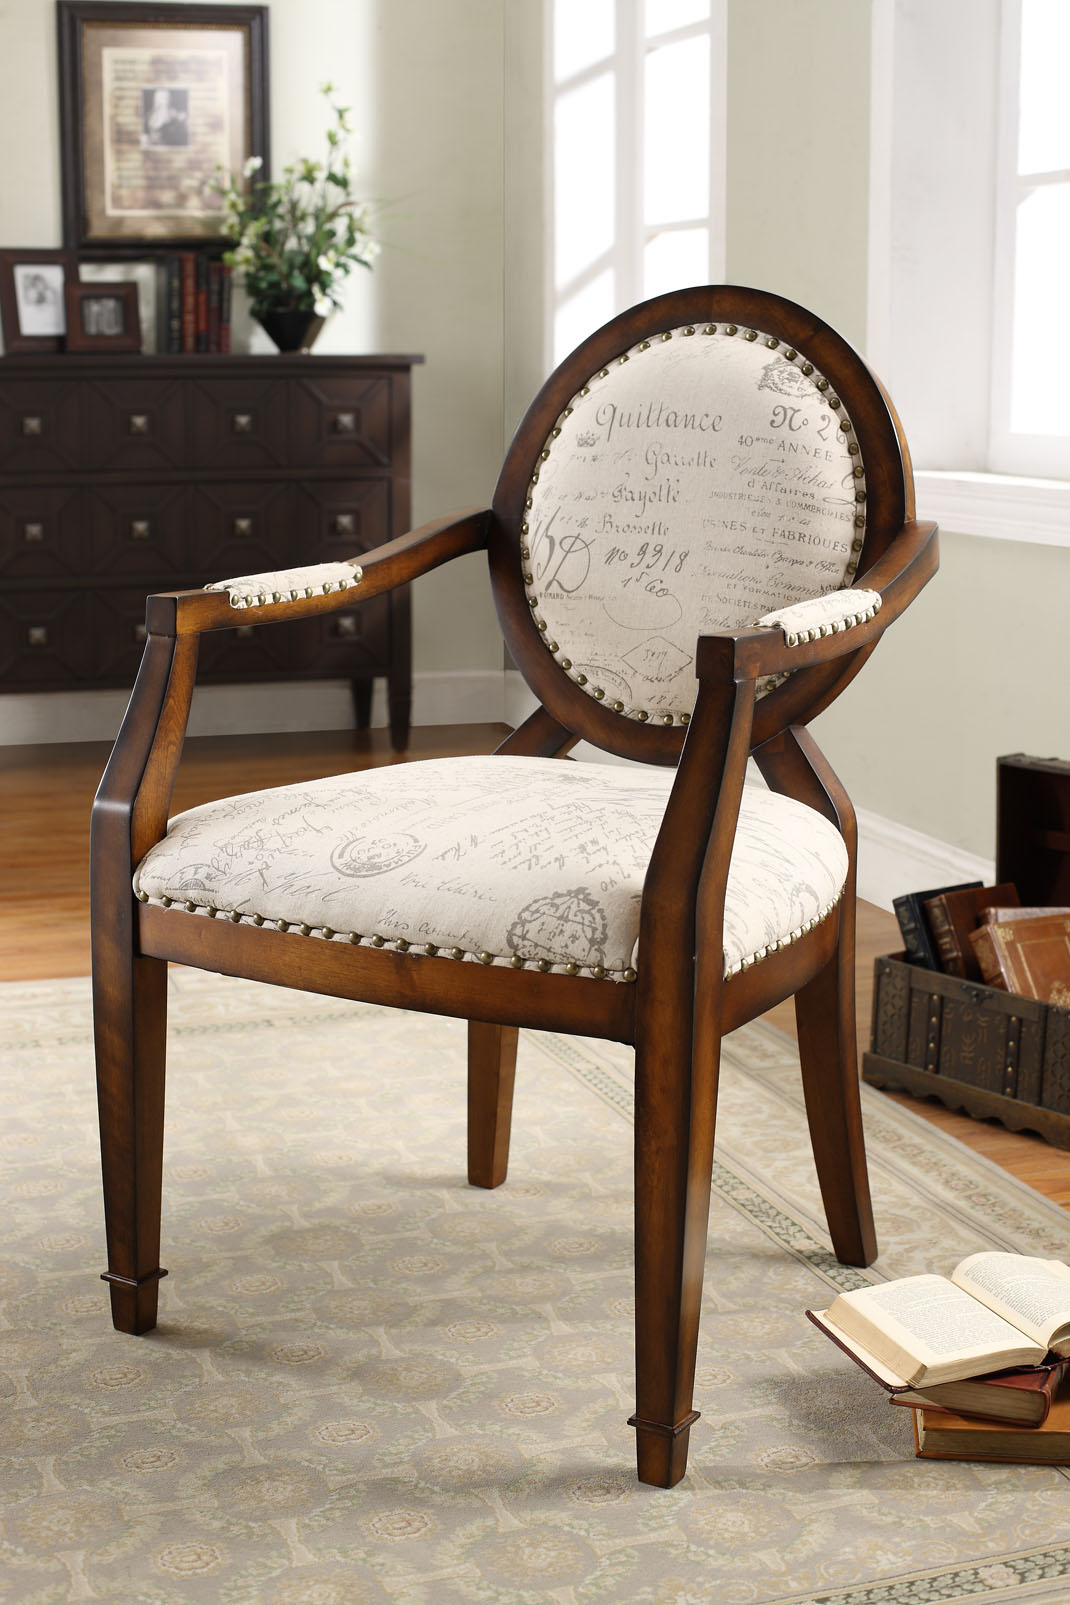 vintage wooden chairs black and white rocking chair amazing antique designs for timeless elegance